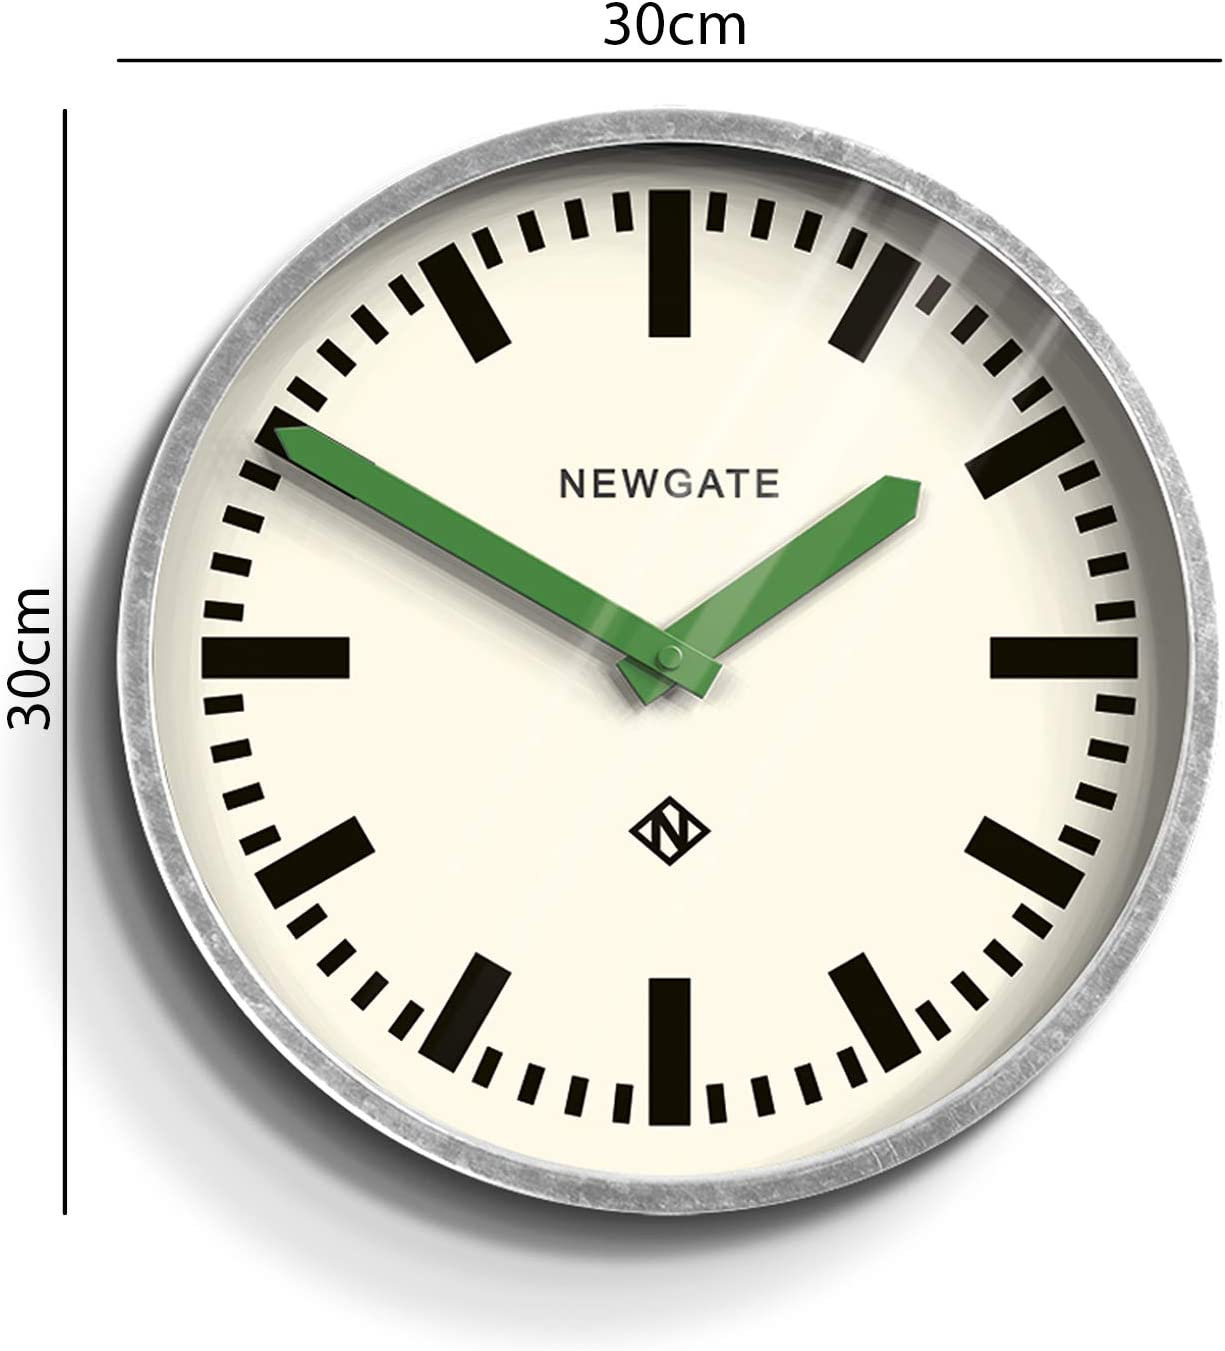 Newgate The Luggage Metal Wall Clock Green Amazon Co Uk Kitchen Home